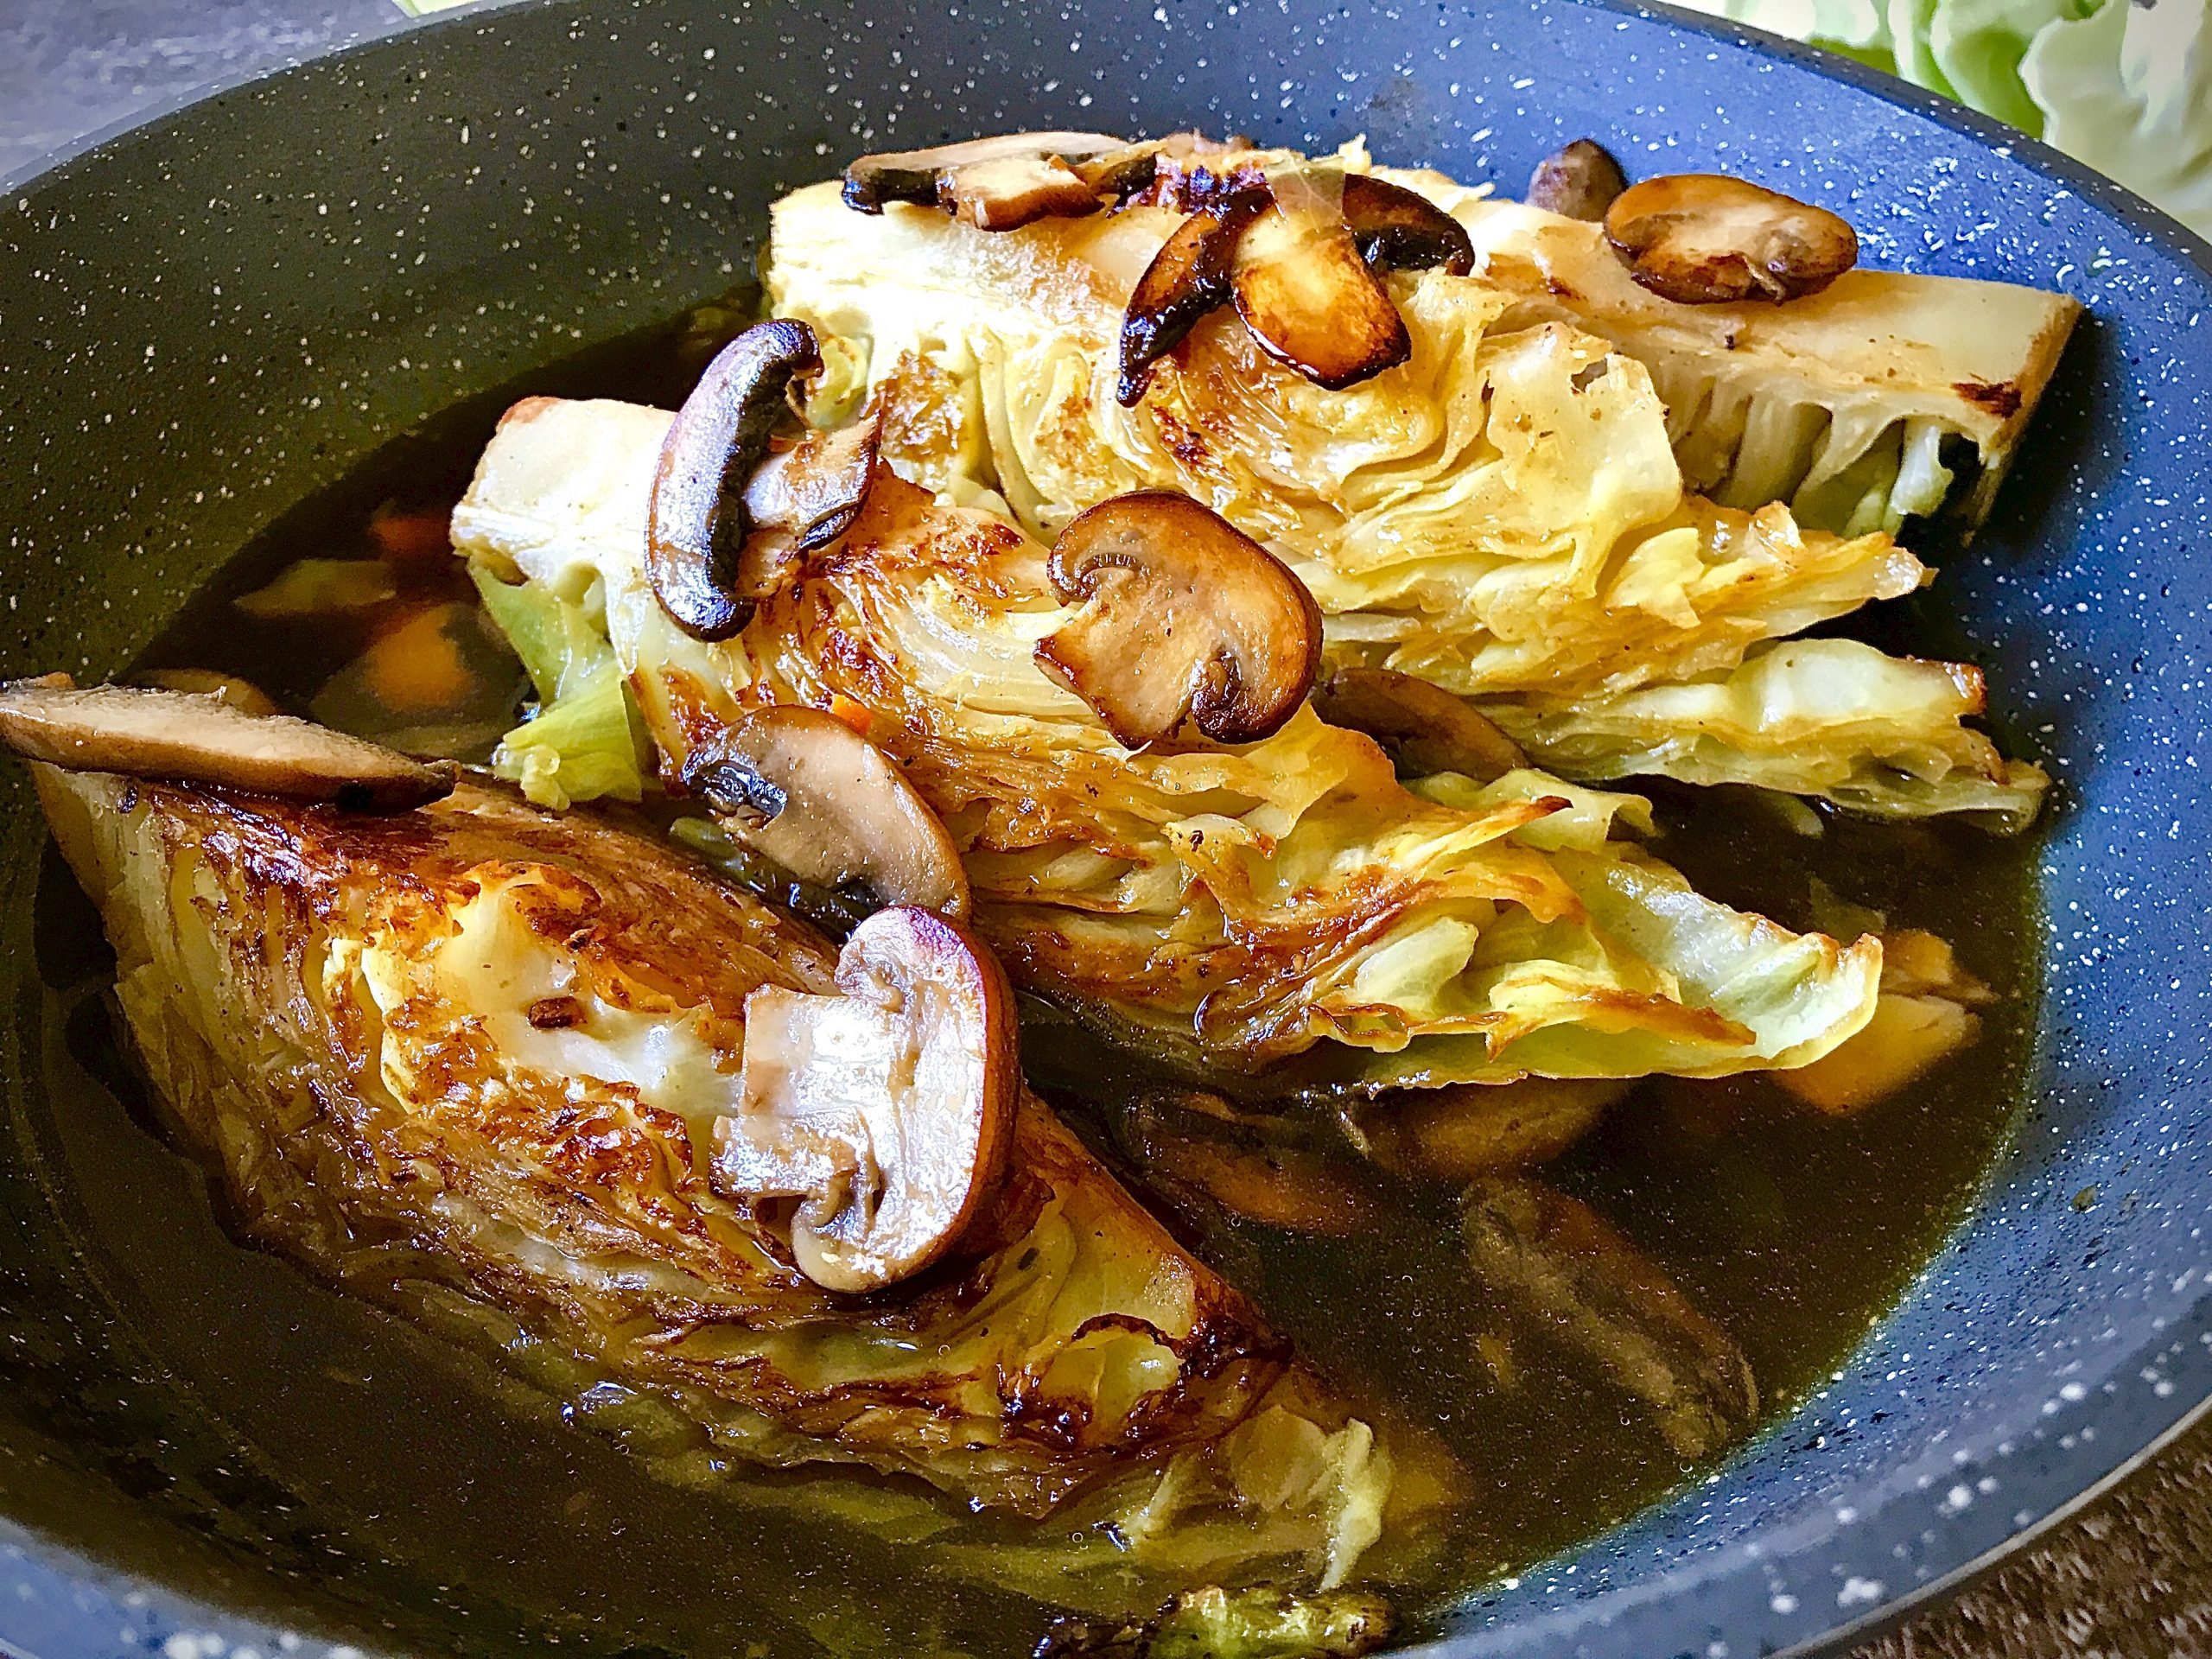 VEGAN BRAISED CABBAGE WITH MUSHROOM